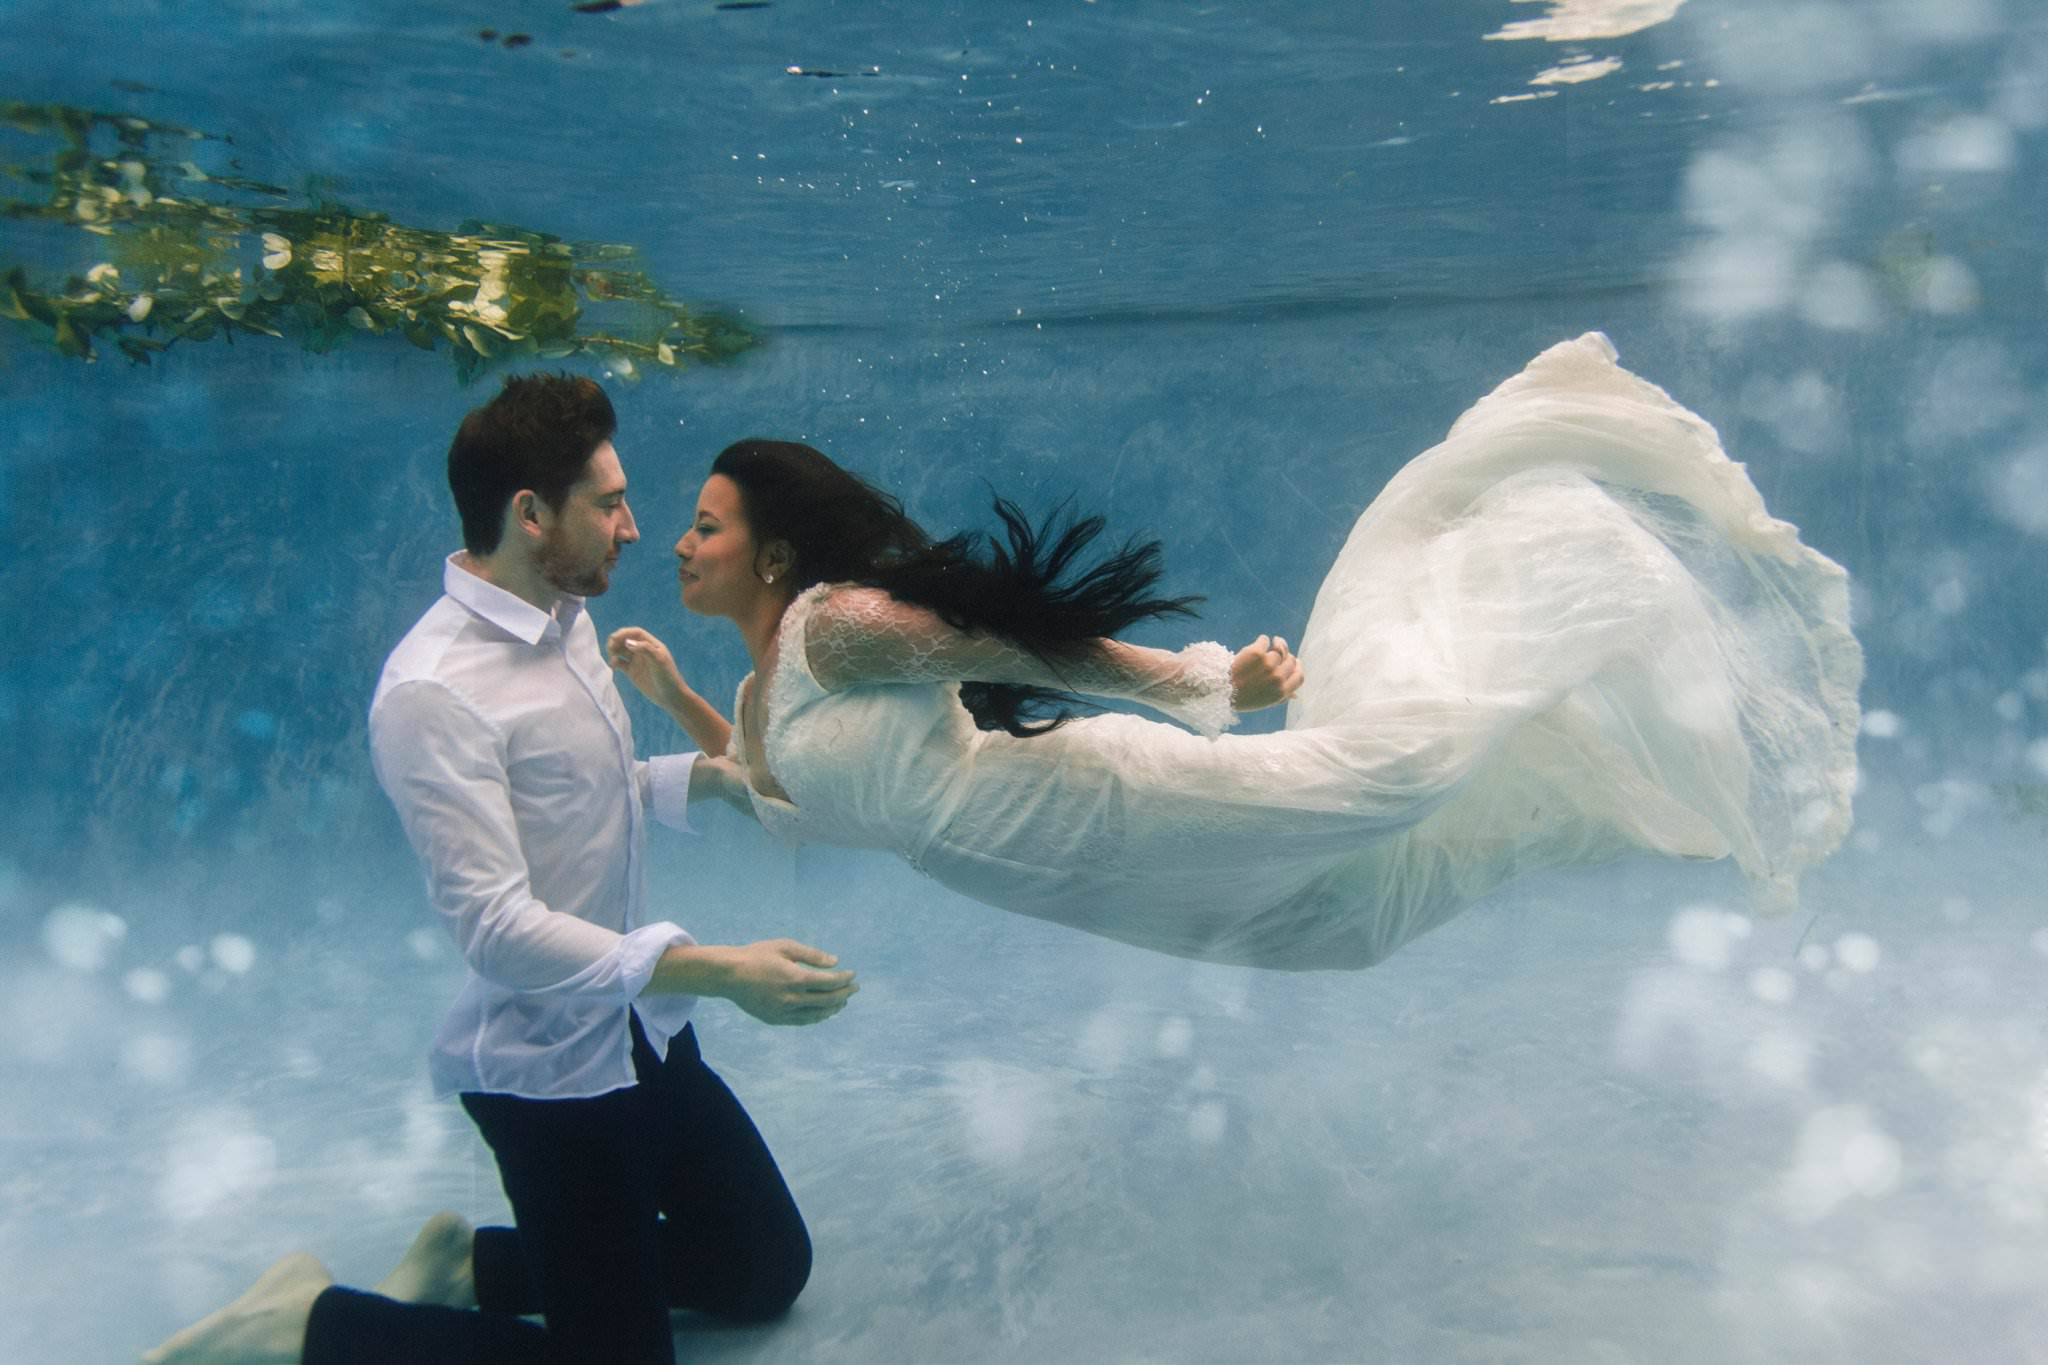 Arizona unique underwater wedding photography in a pool